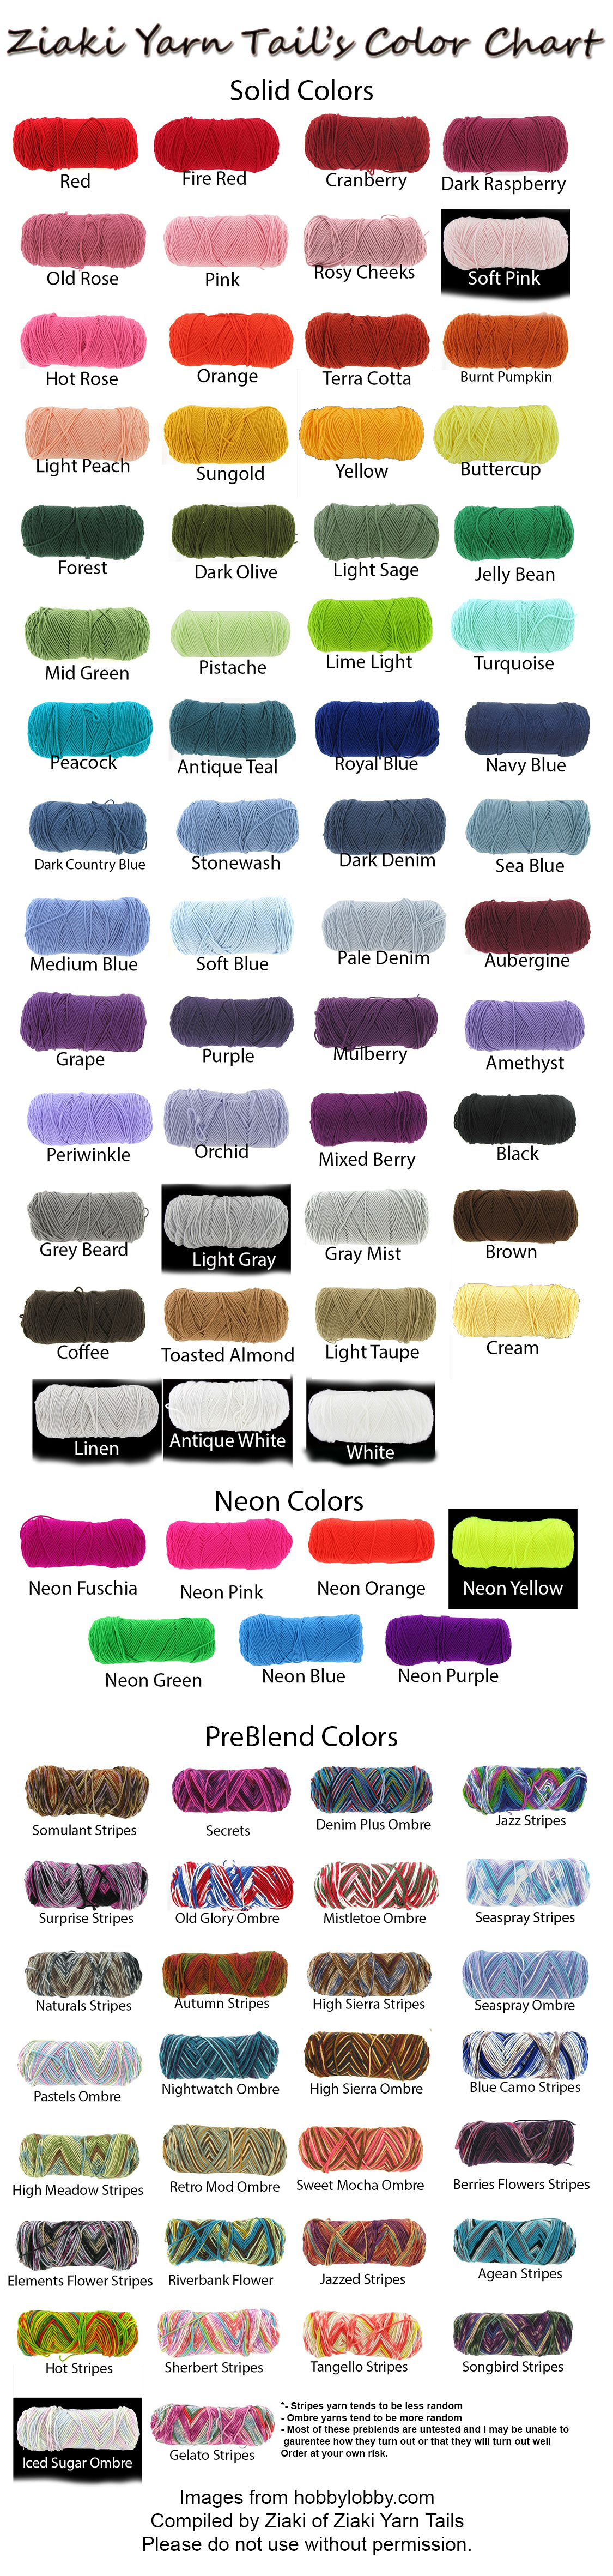 Yarn color chart frodo fullring co